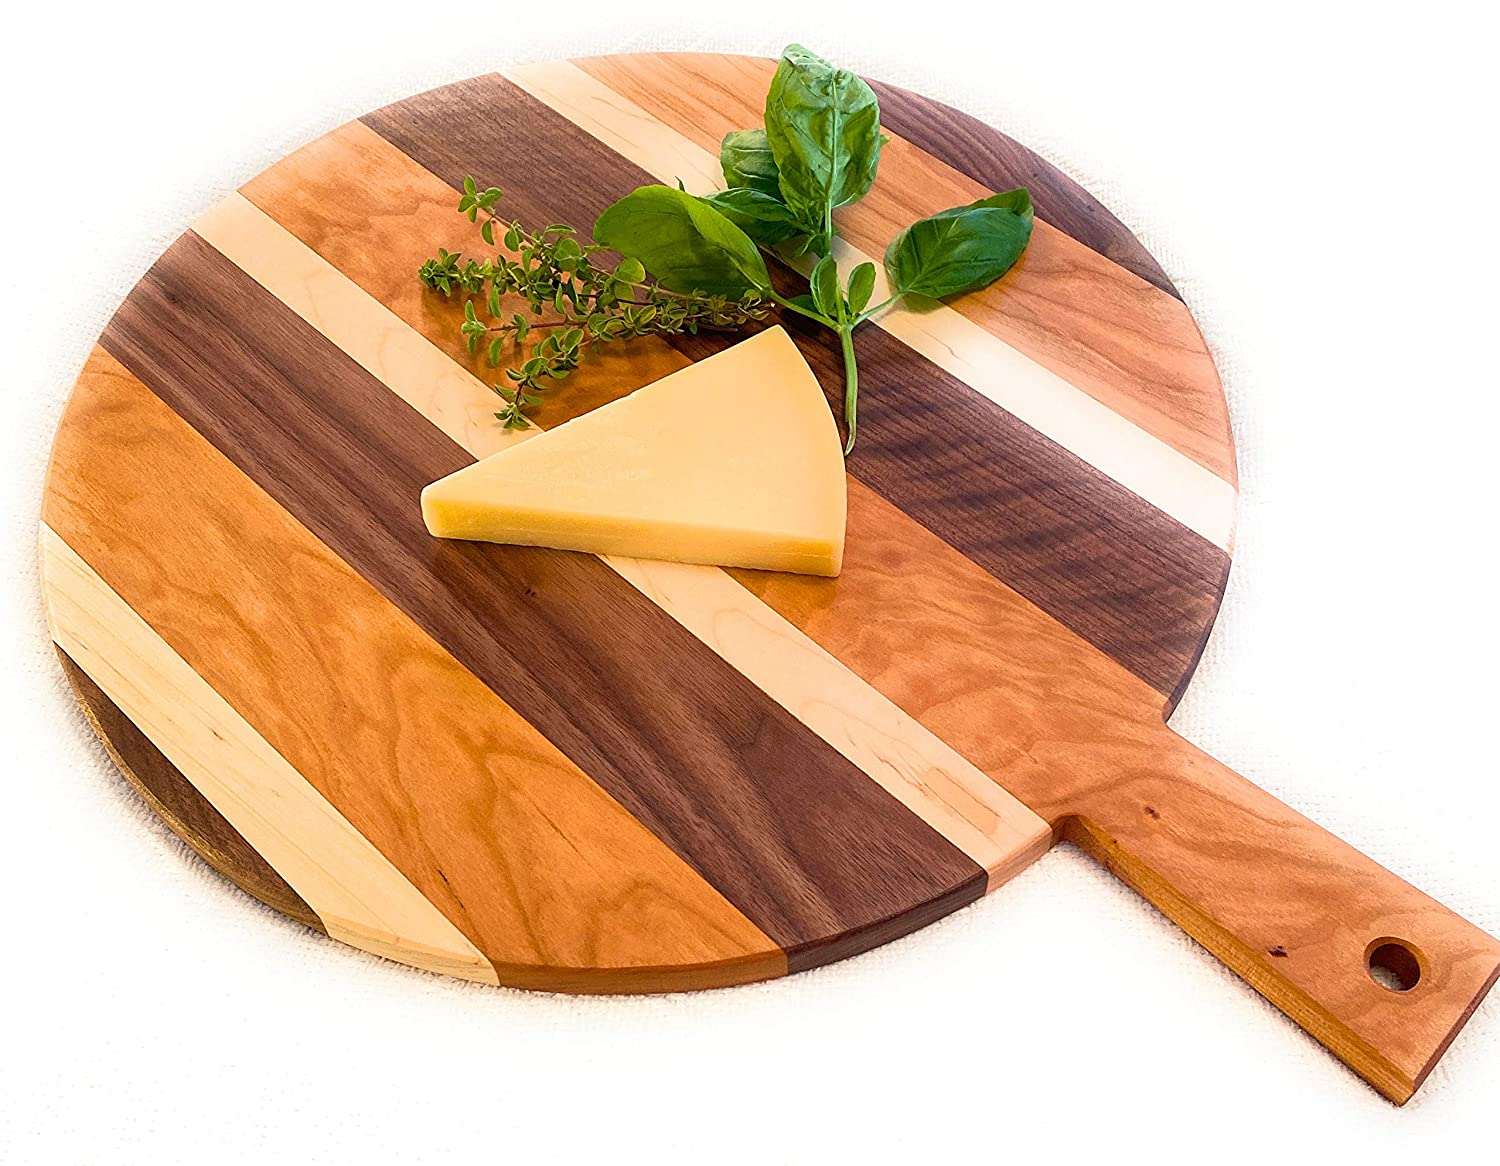 Generic Large Round Charcuterie Cheese Cutting Board with Handle